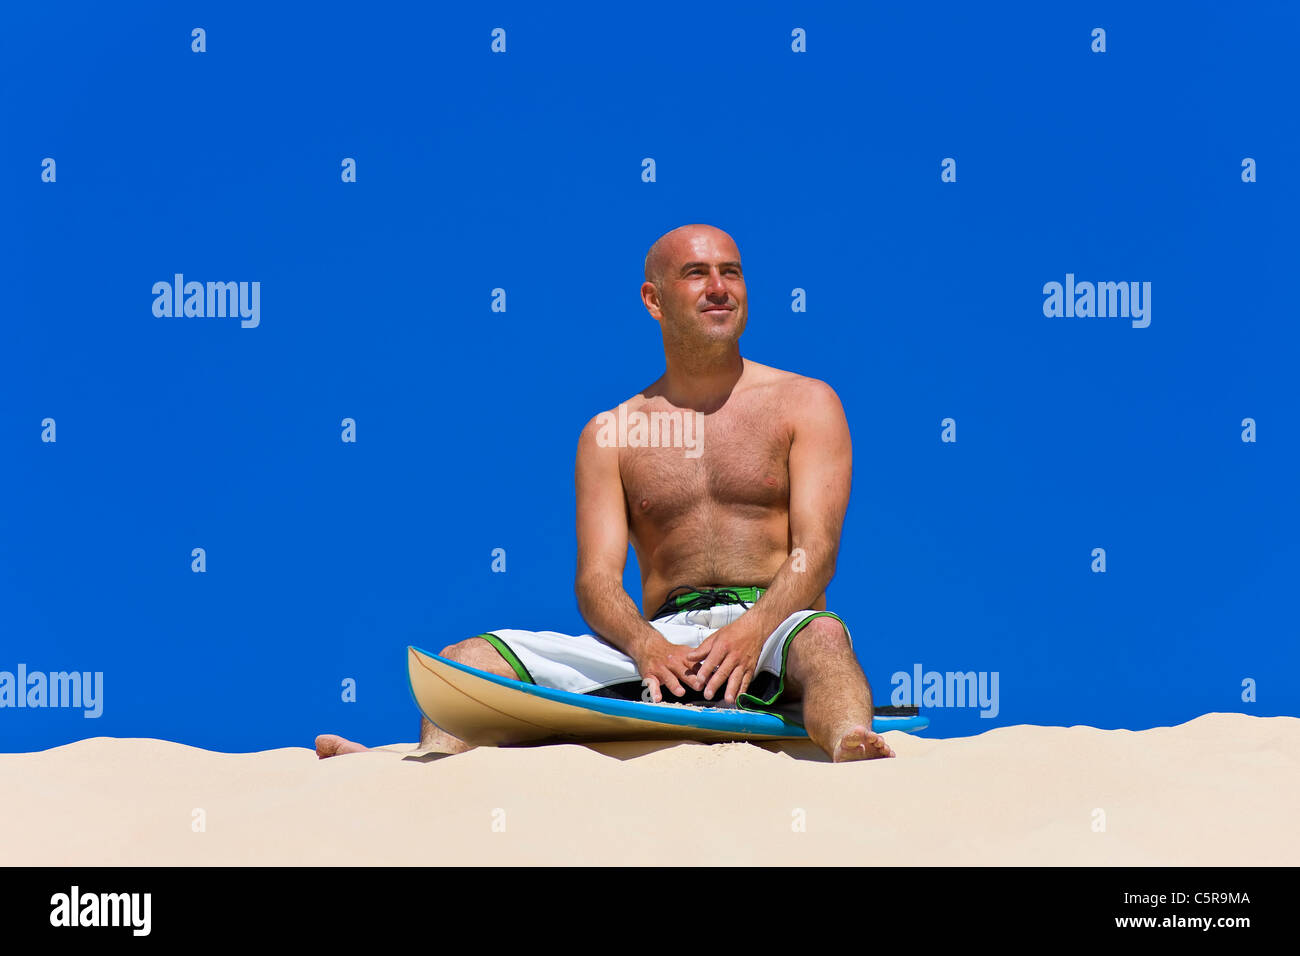 Surfer smiles on board sitting on beach. - Stock Image